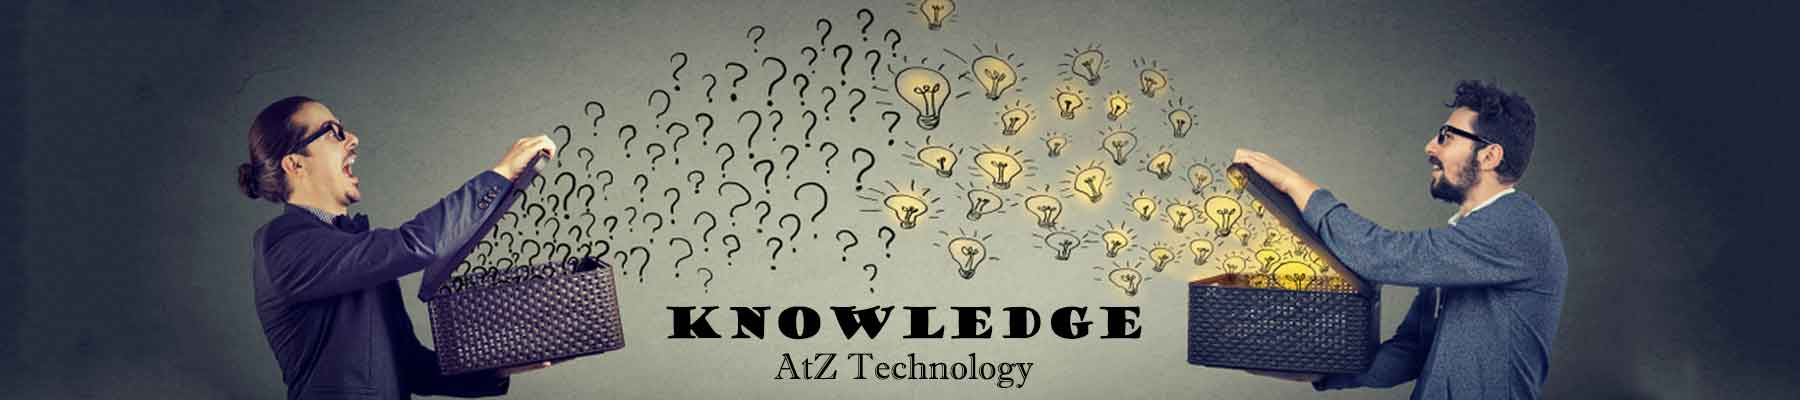 AtZ Technology About Us